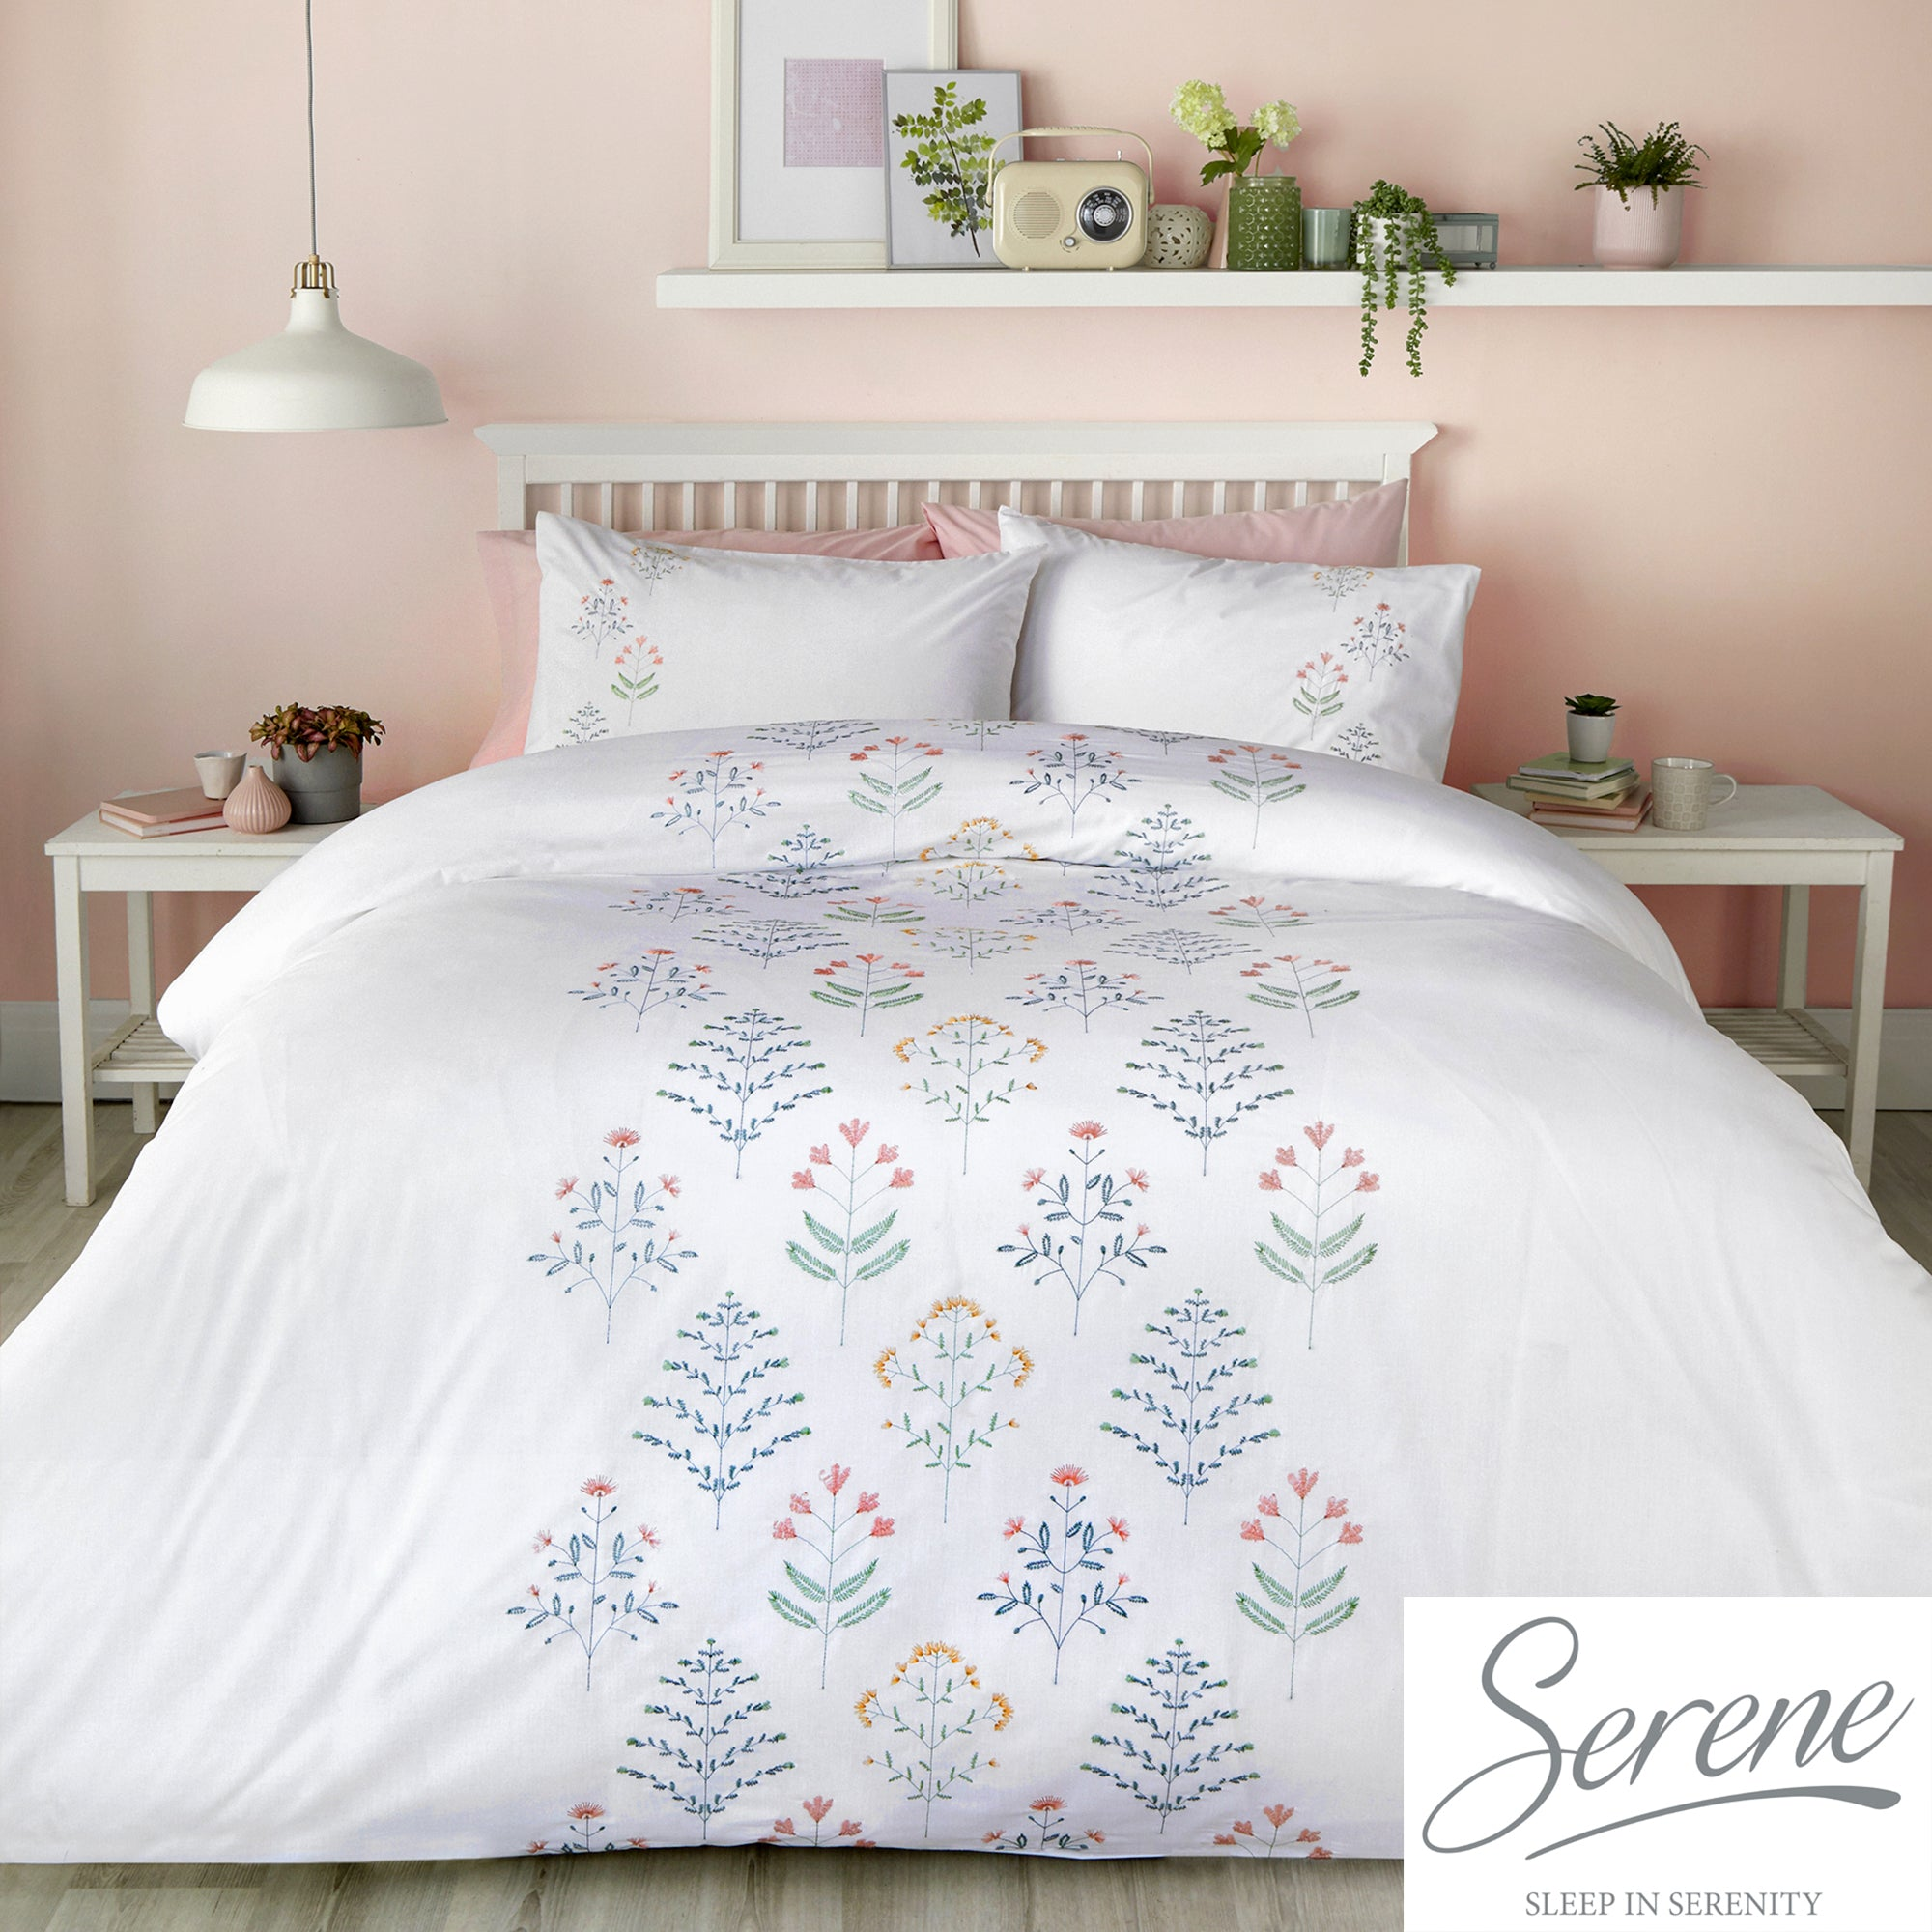 Flora - Embroidered Duvet Cover Set in White & Green - by Serene